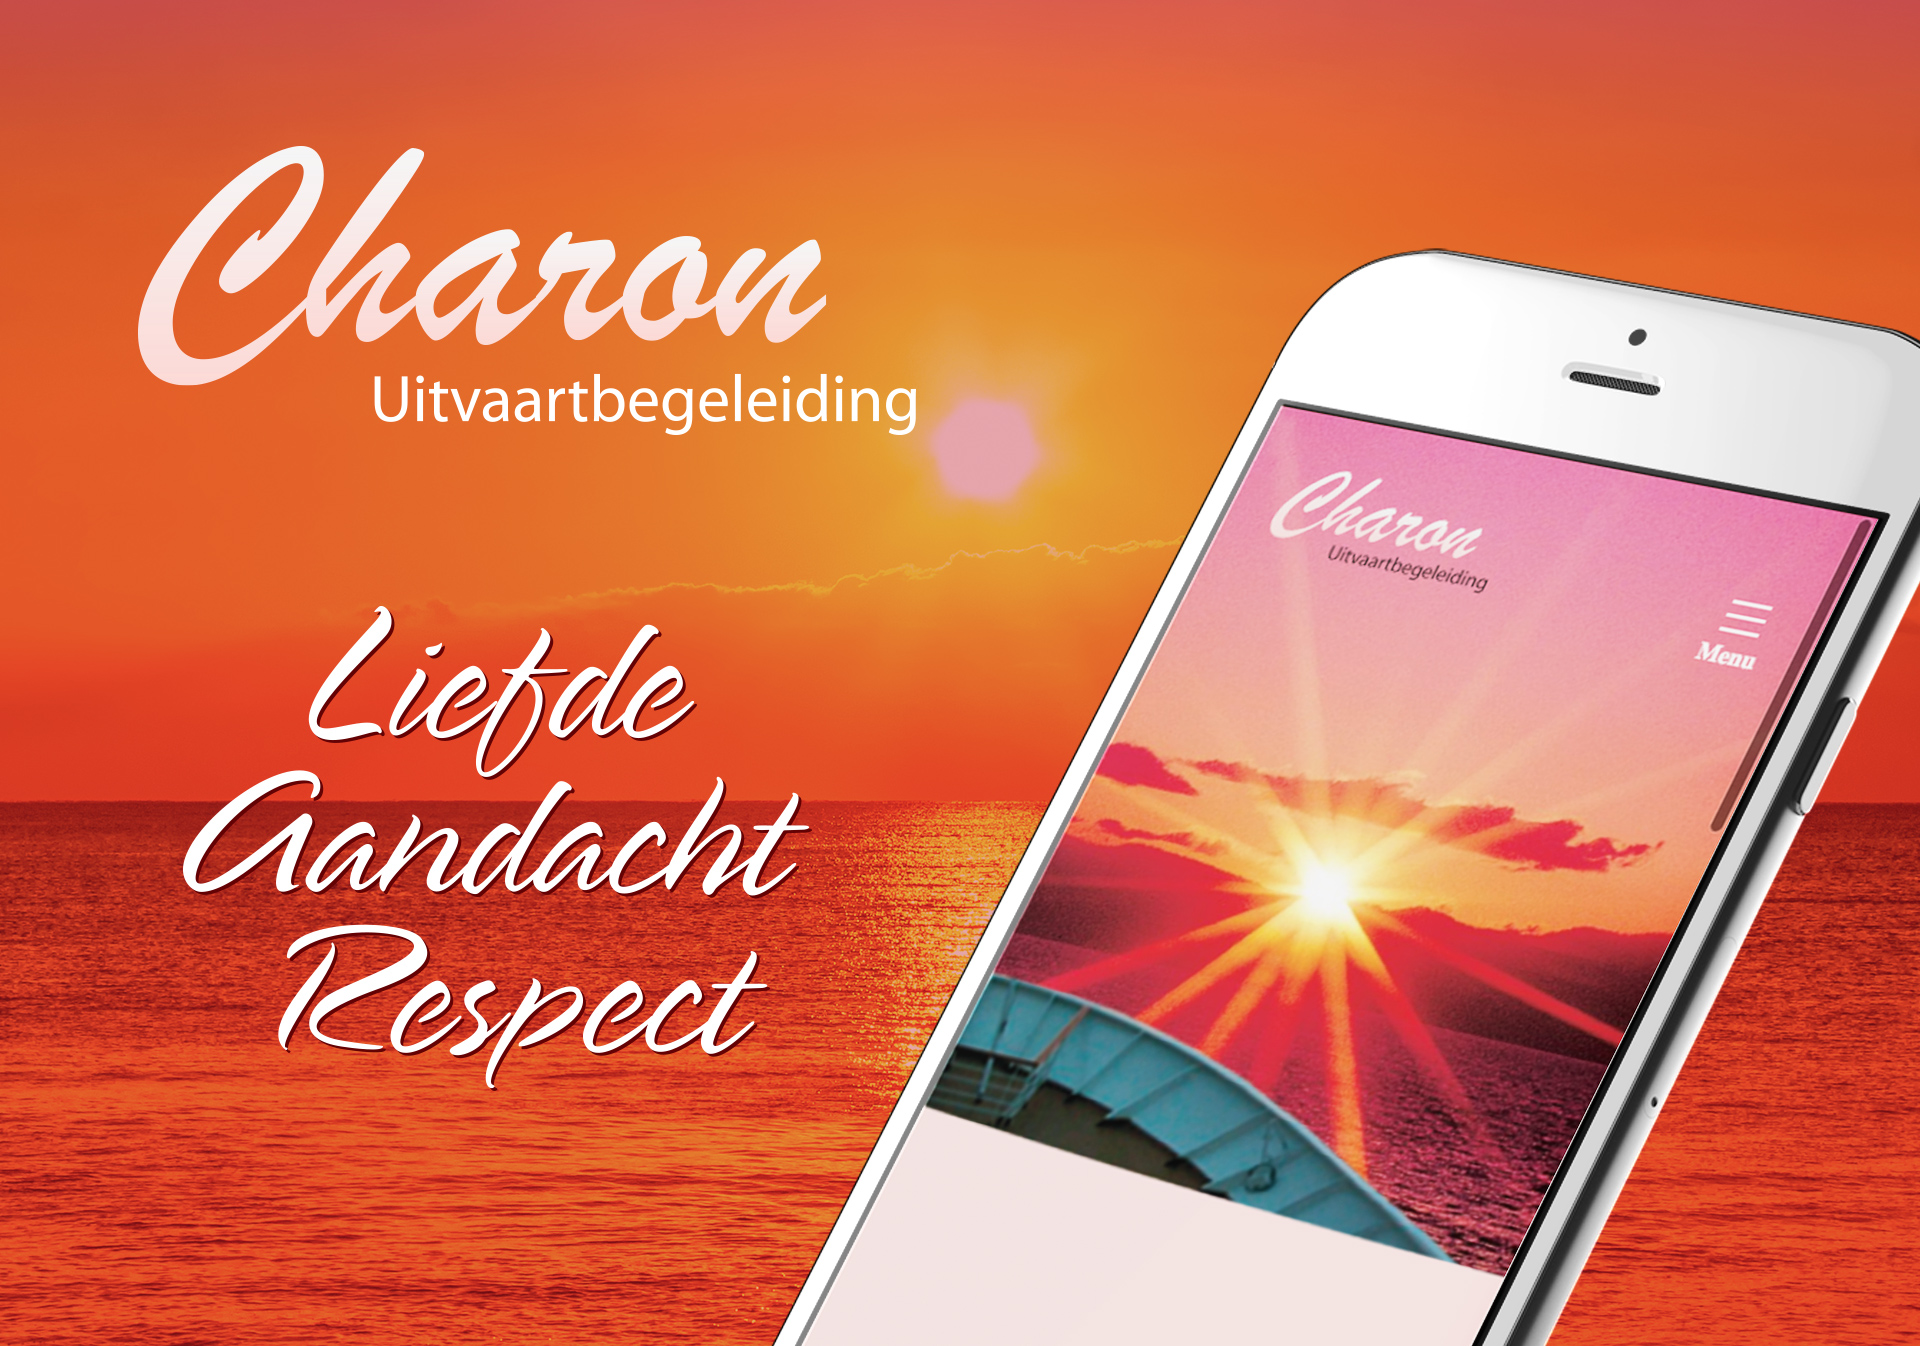 featured charon